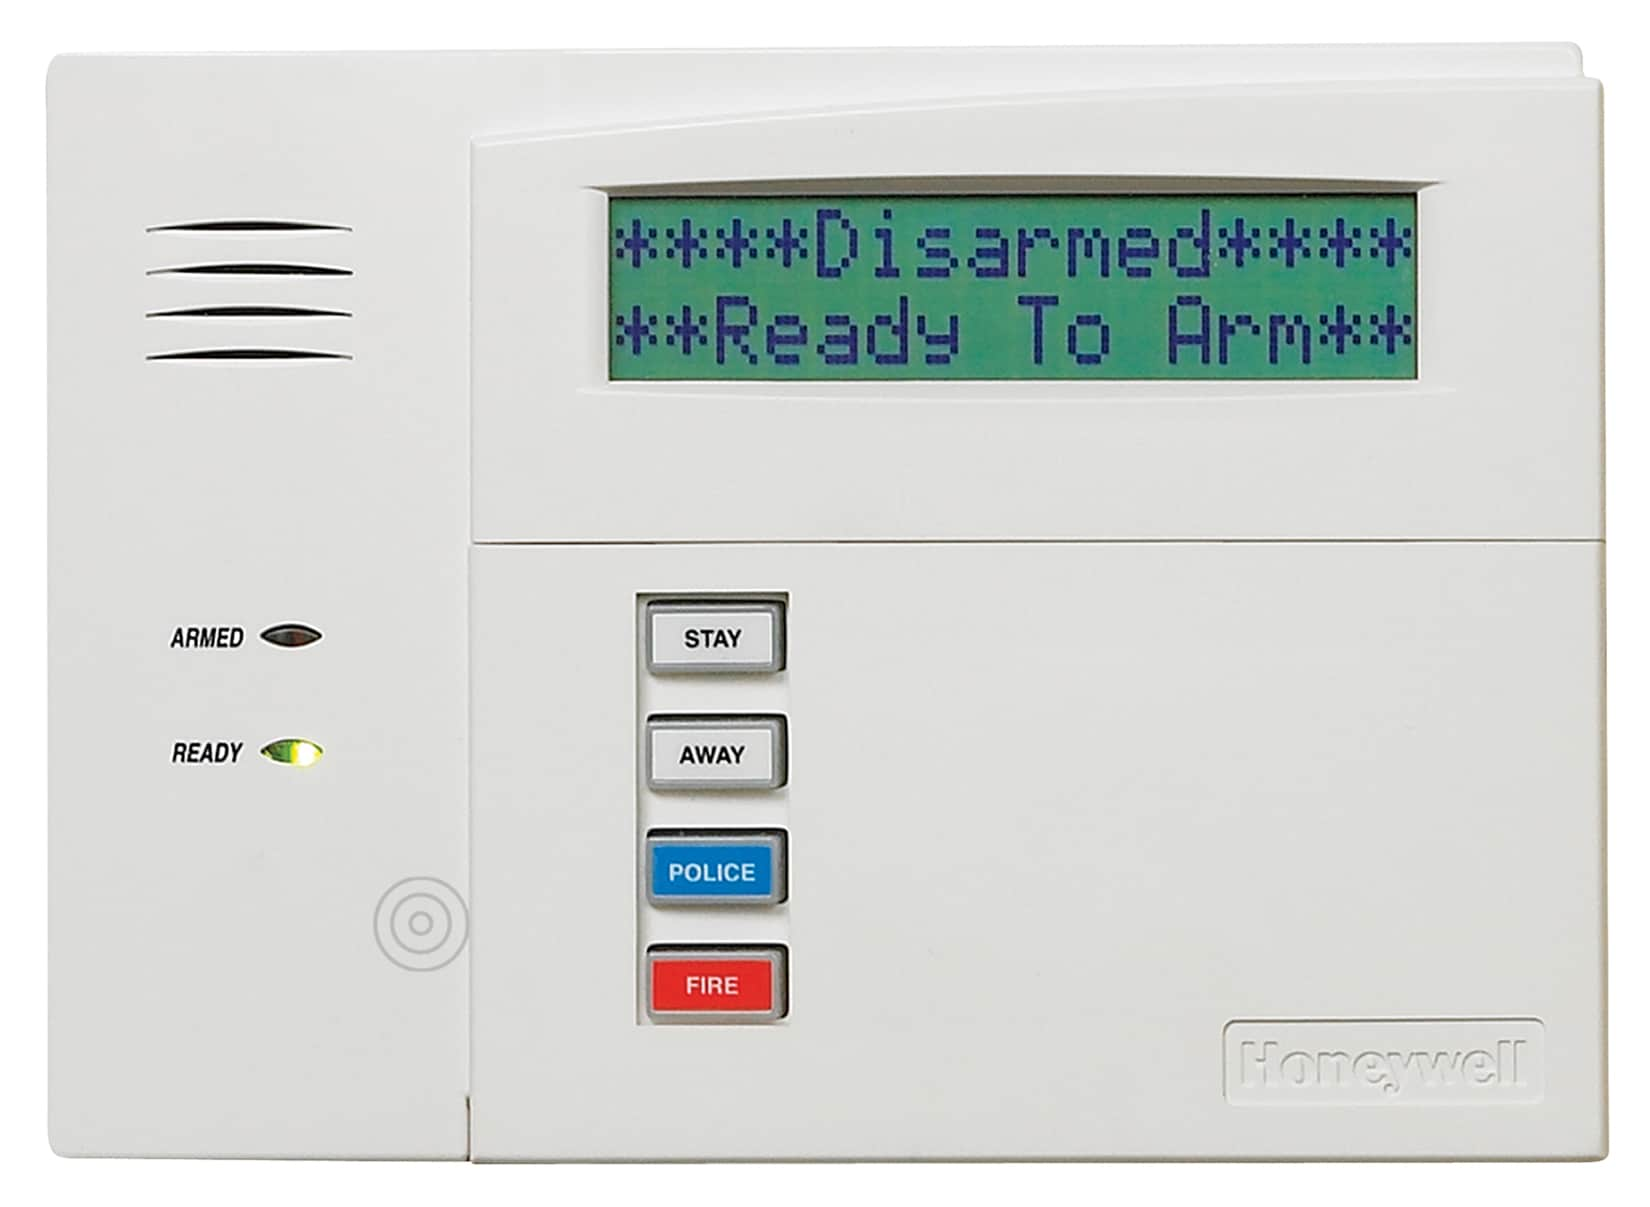 honeywell alarm keypad 6160 manual